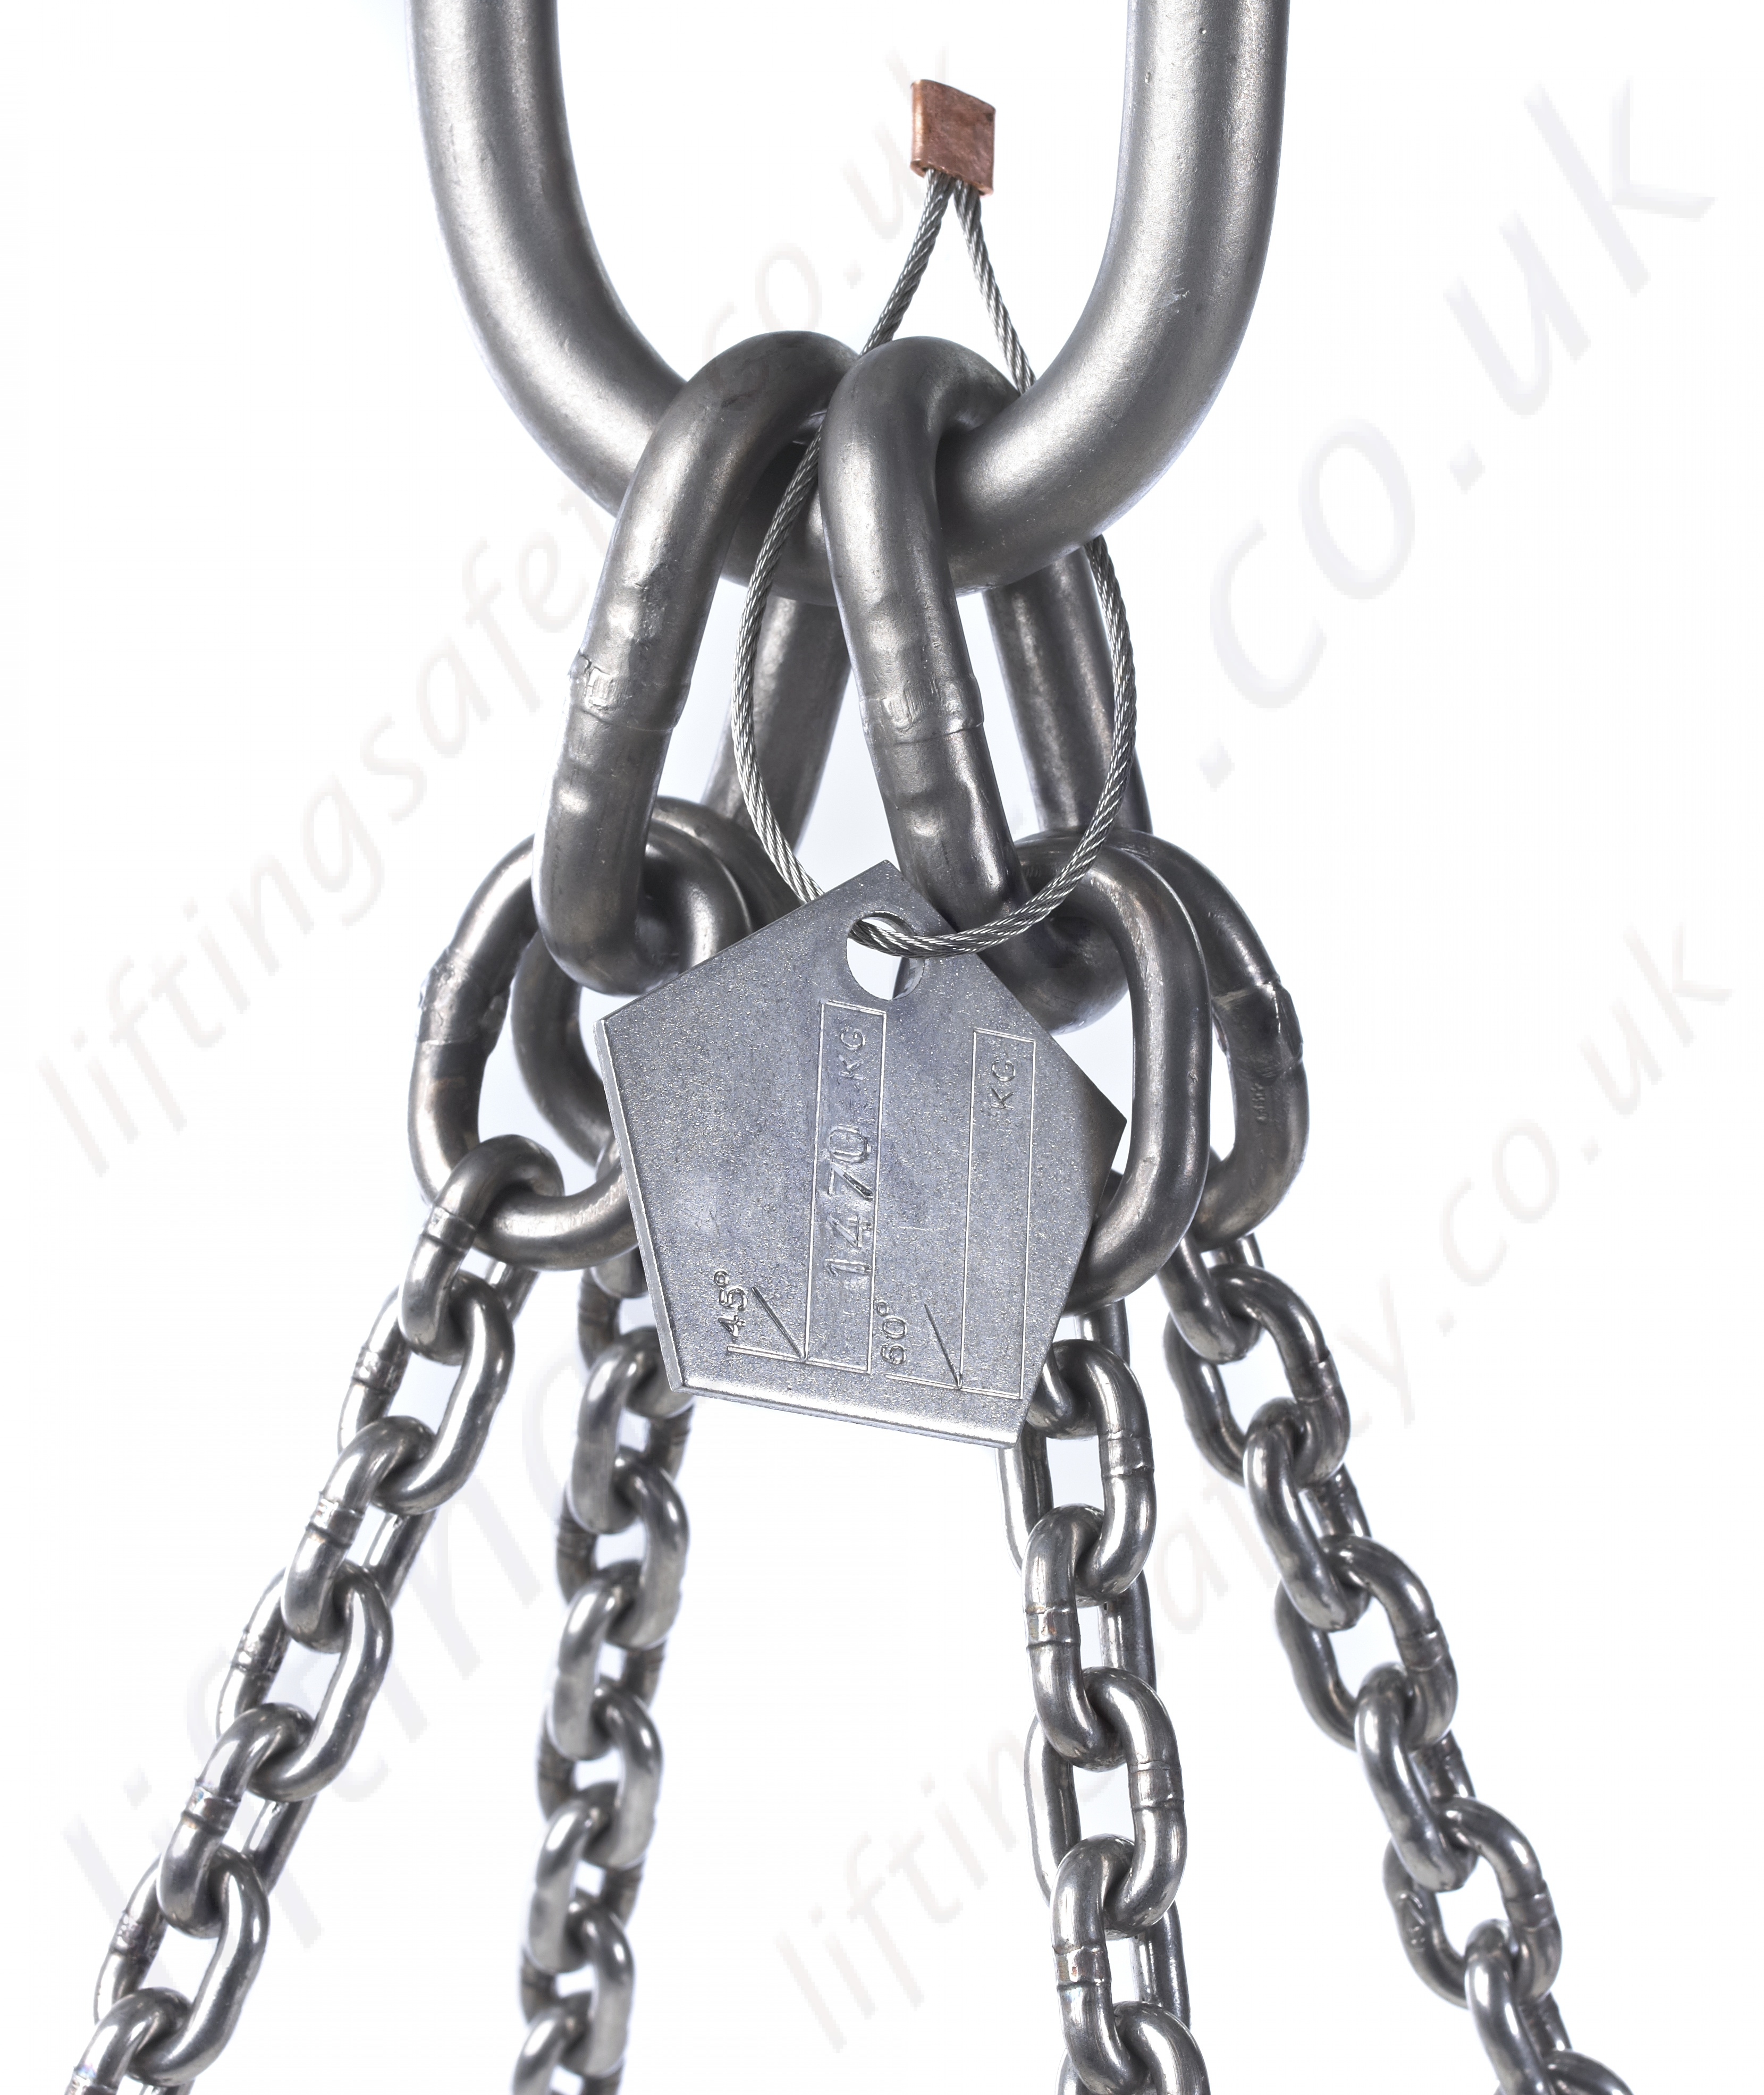 Stainless Steel Lifting Chain Sling - Mechanically Assembled. Chain ...